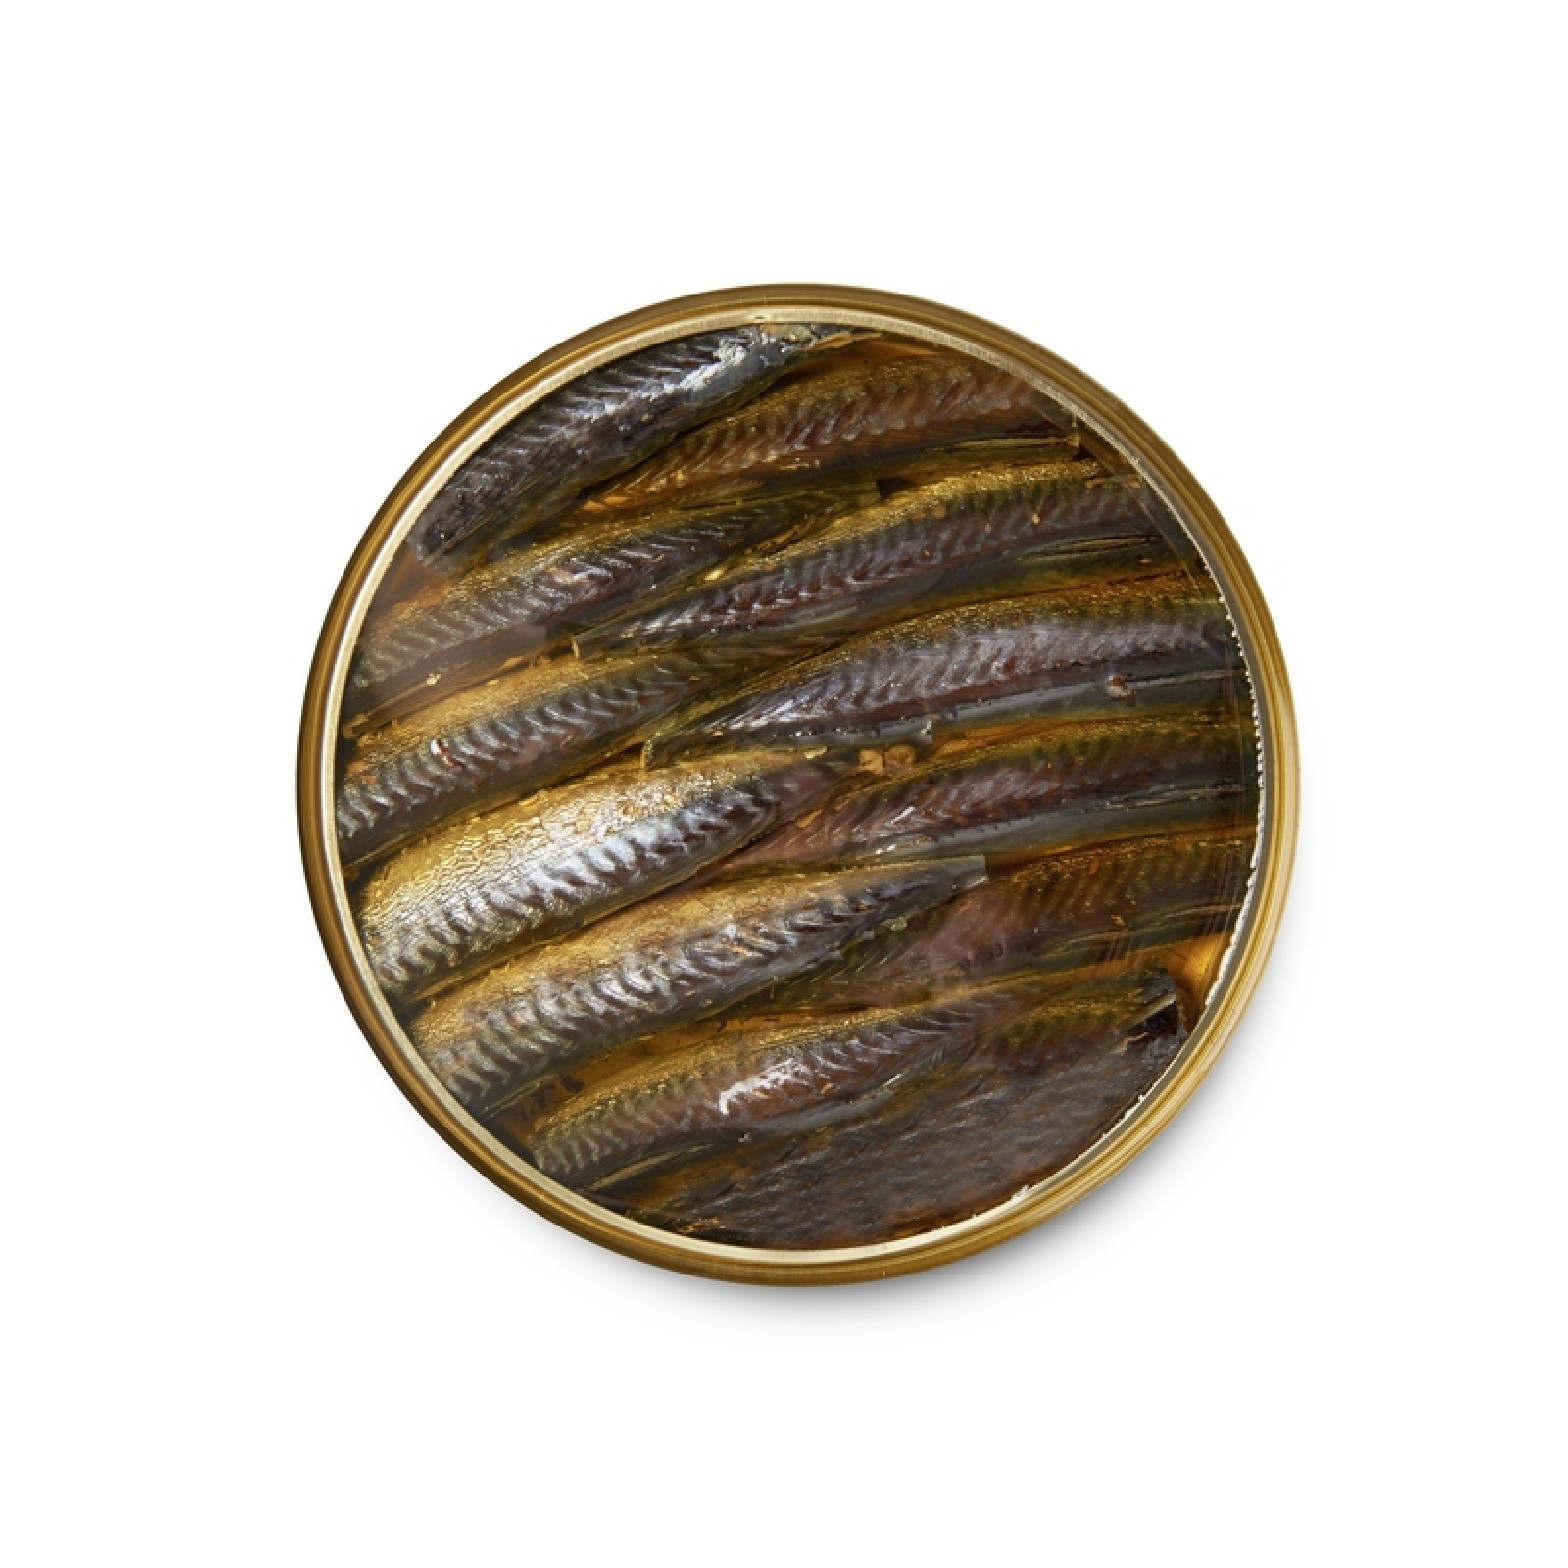 Small smoked mackerels in olive oil